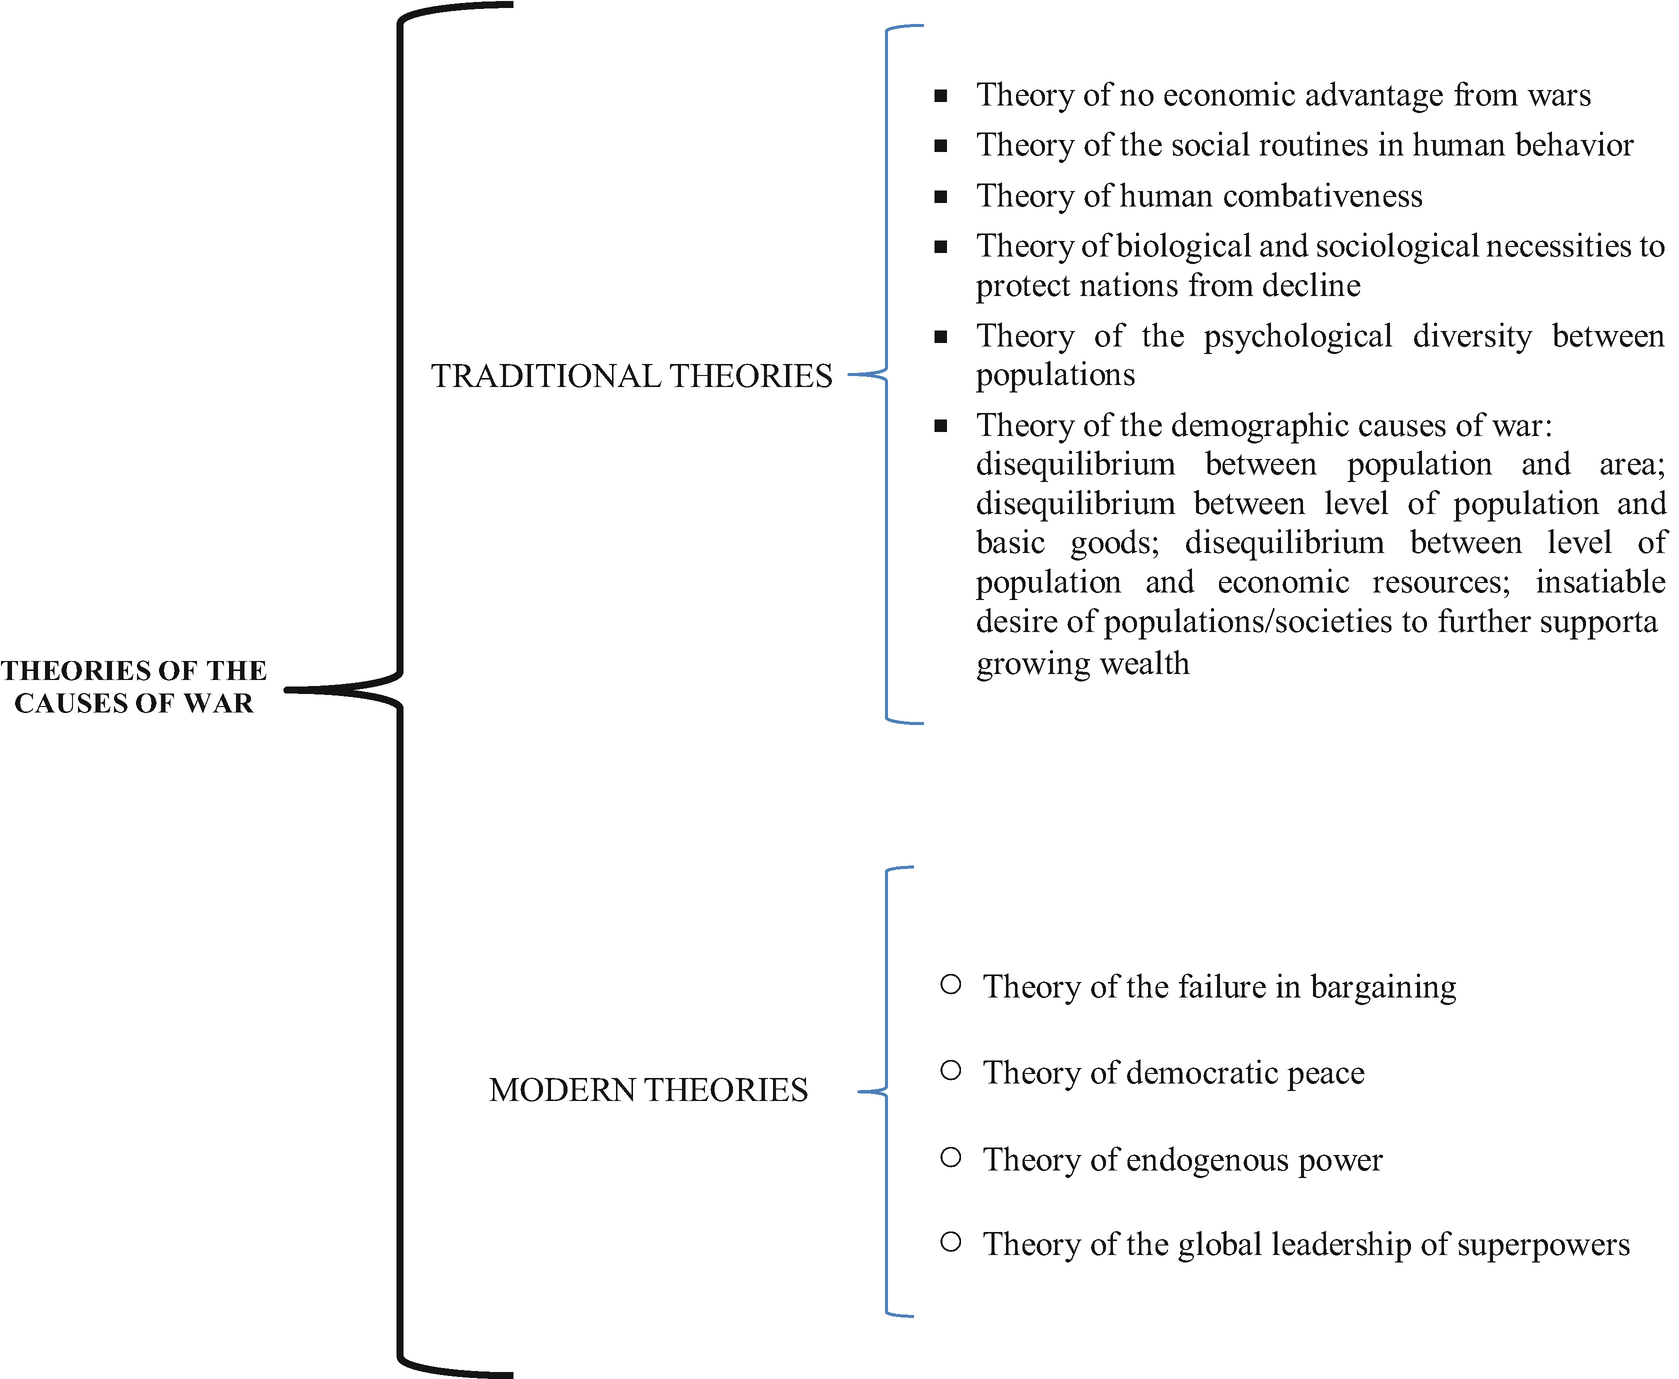 Comparative Theories and Causes of War | SpringerLink